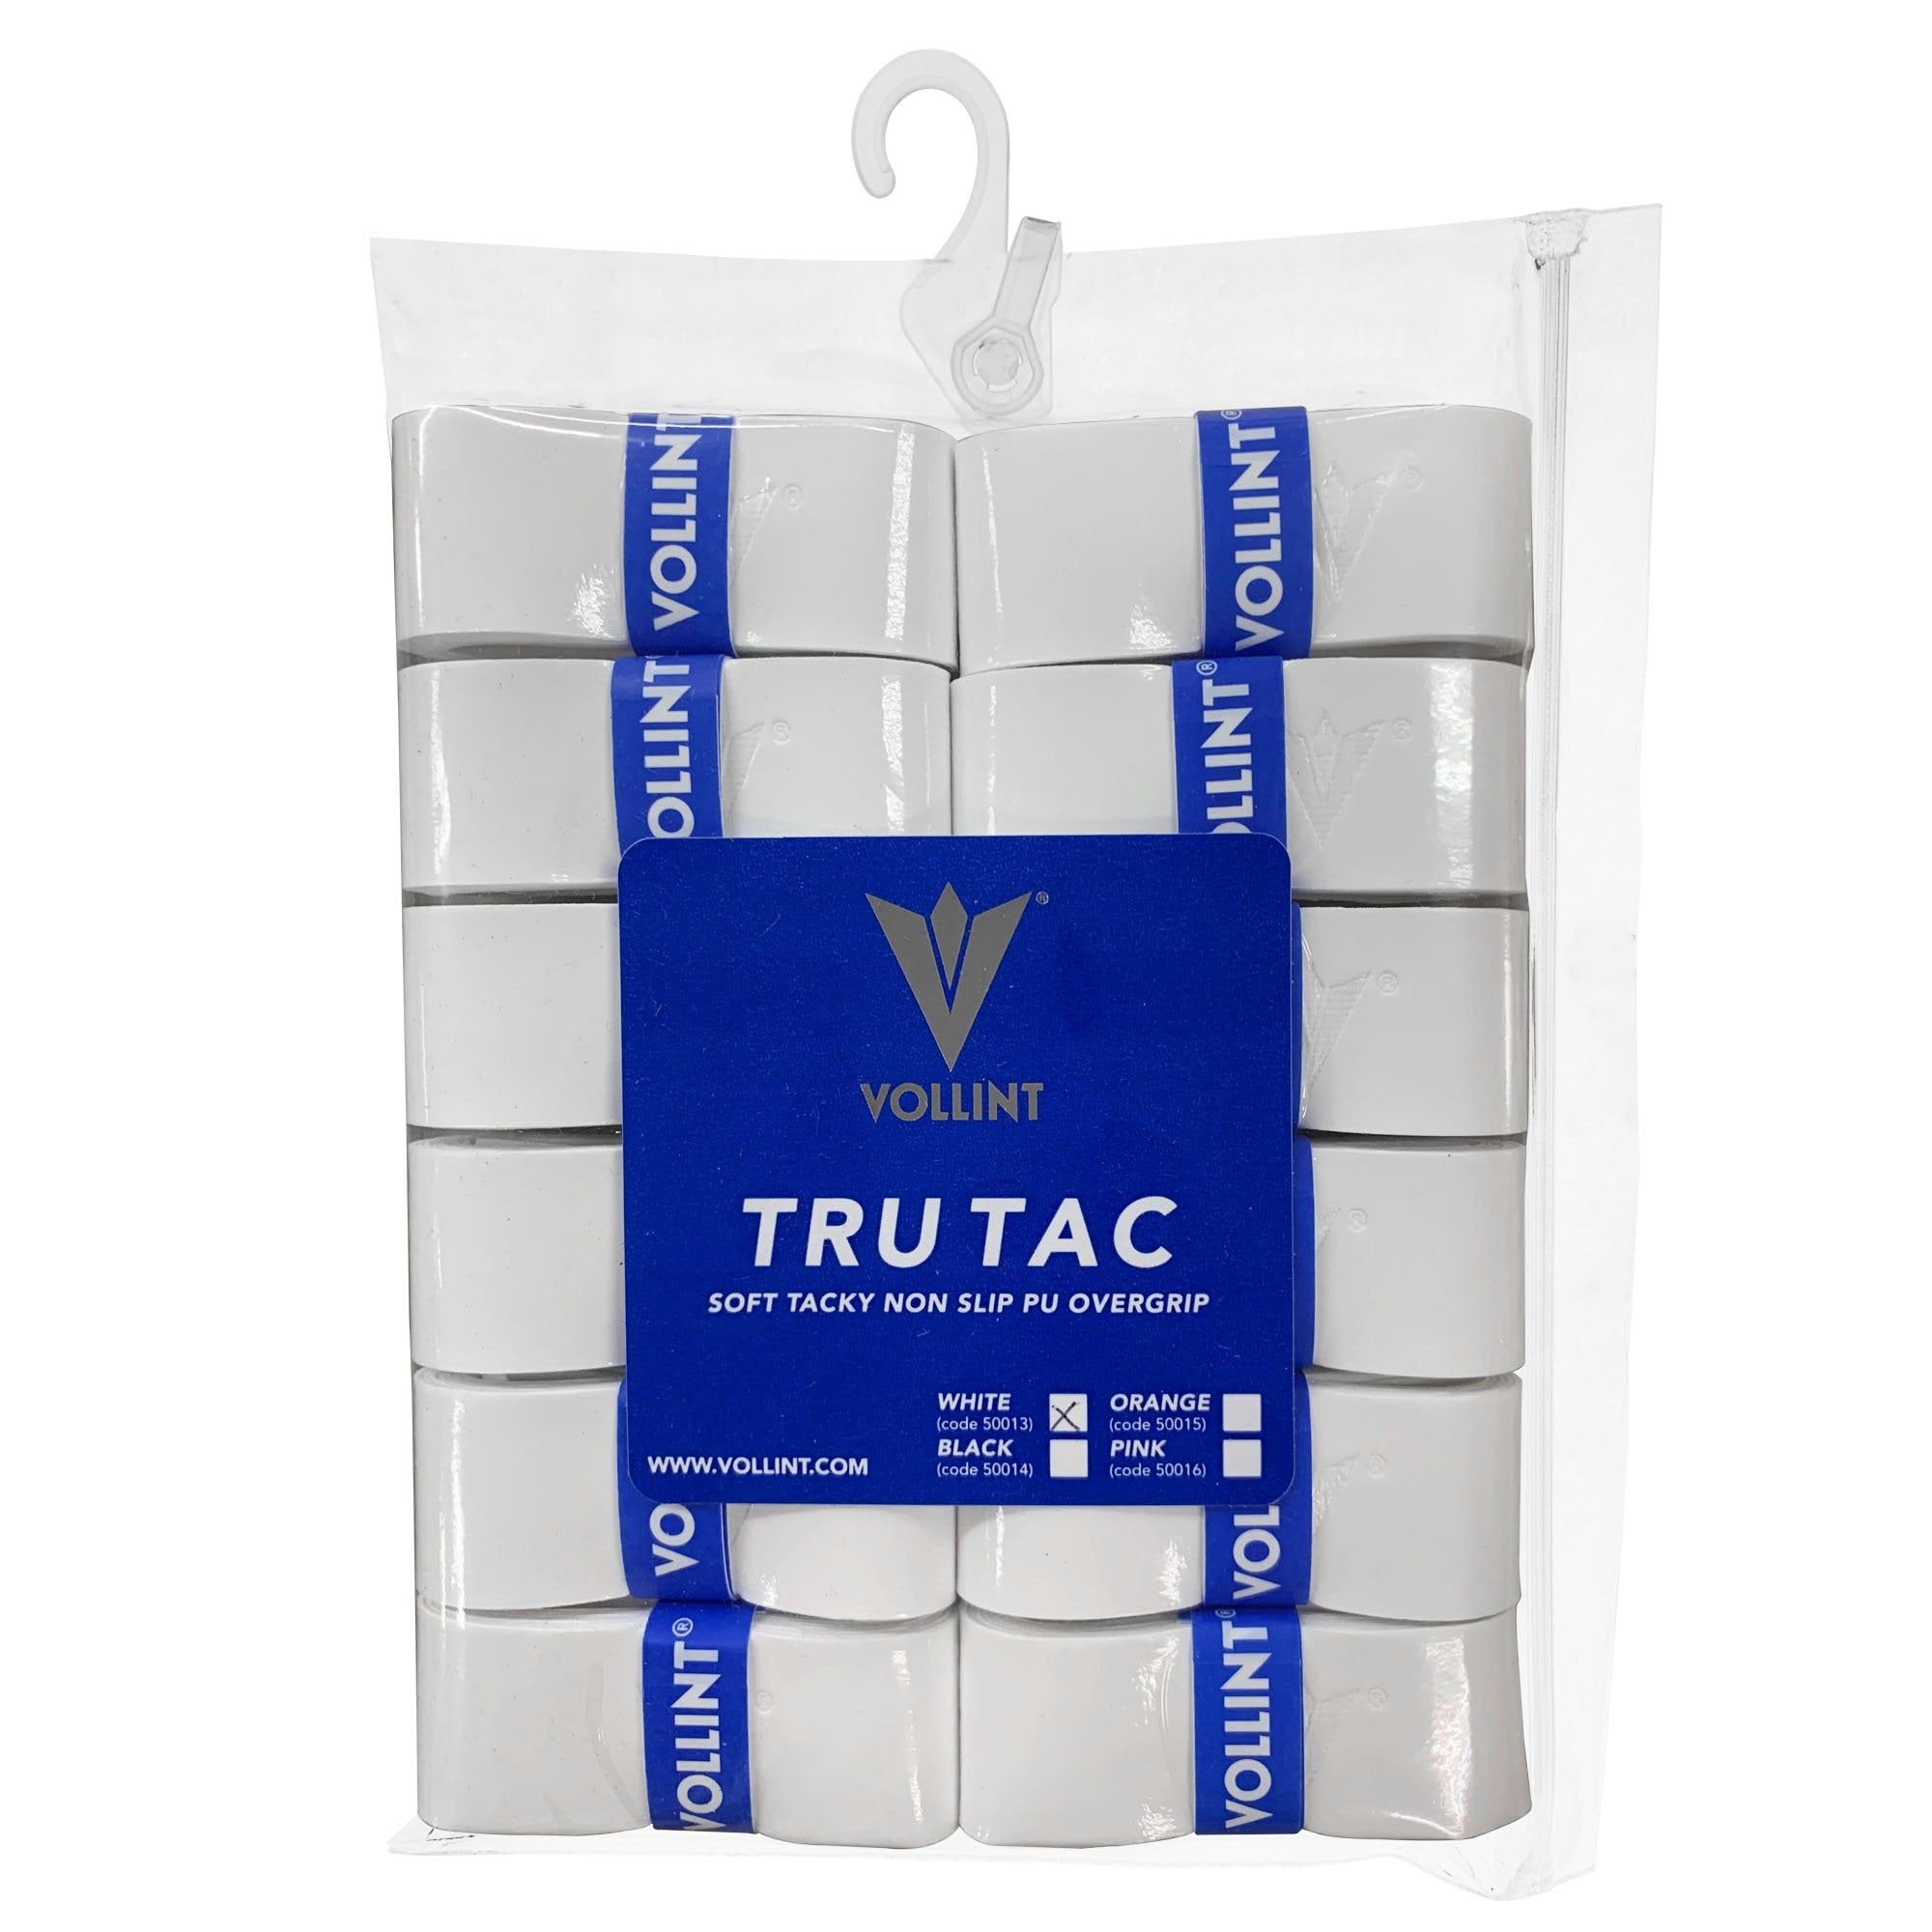 Image of Vollint TruTac Overgrip - Pack of 12